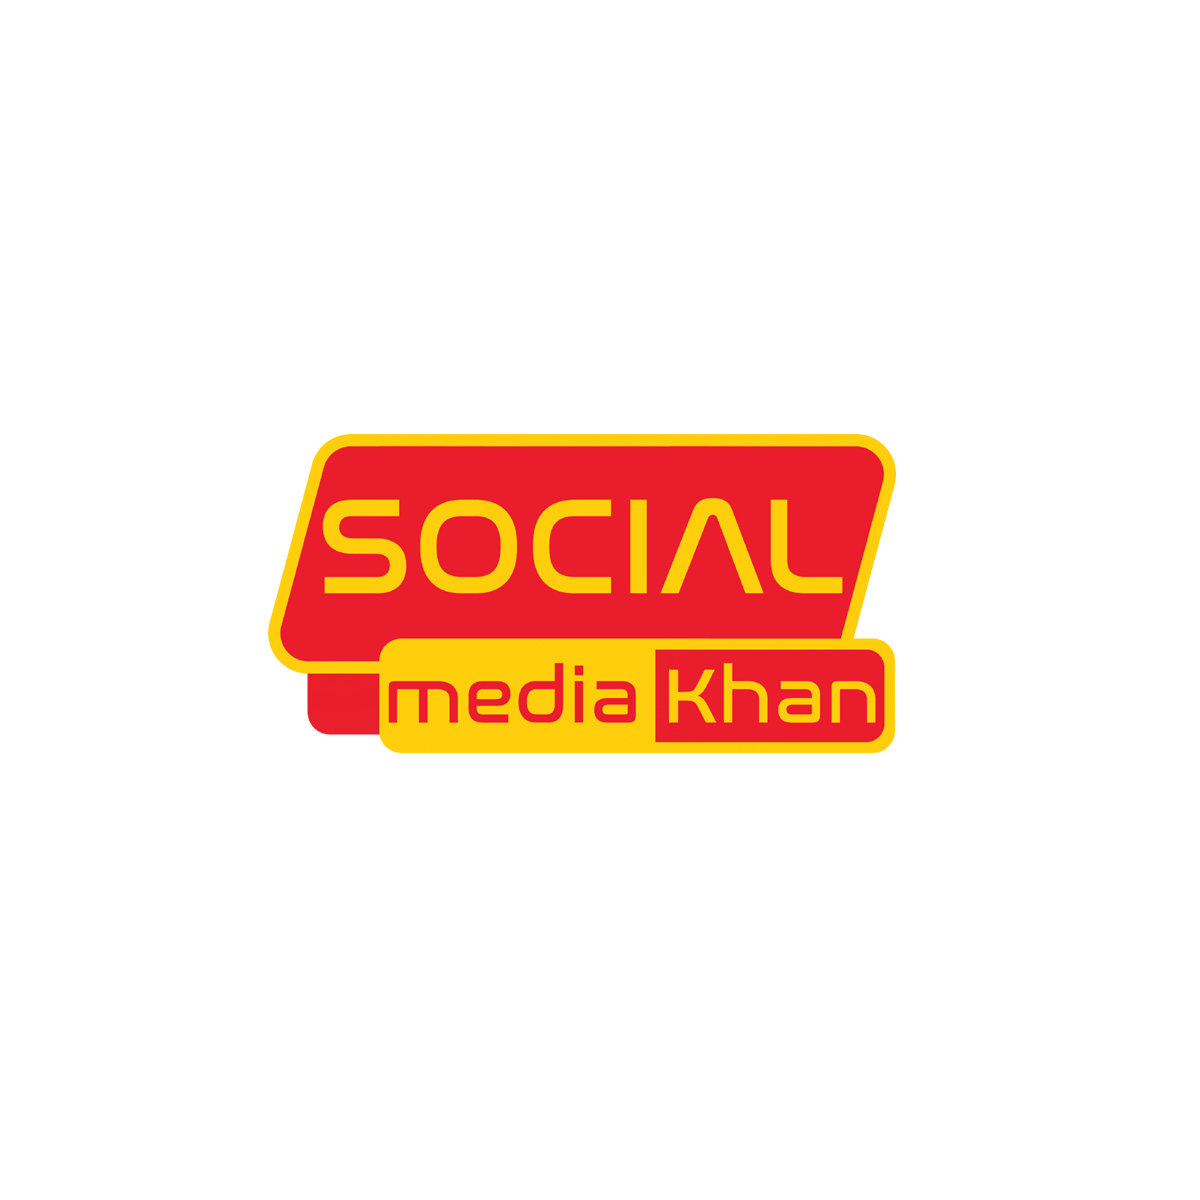 Support Social Media Khan YouTube Channel to Serve The Community